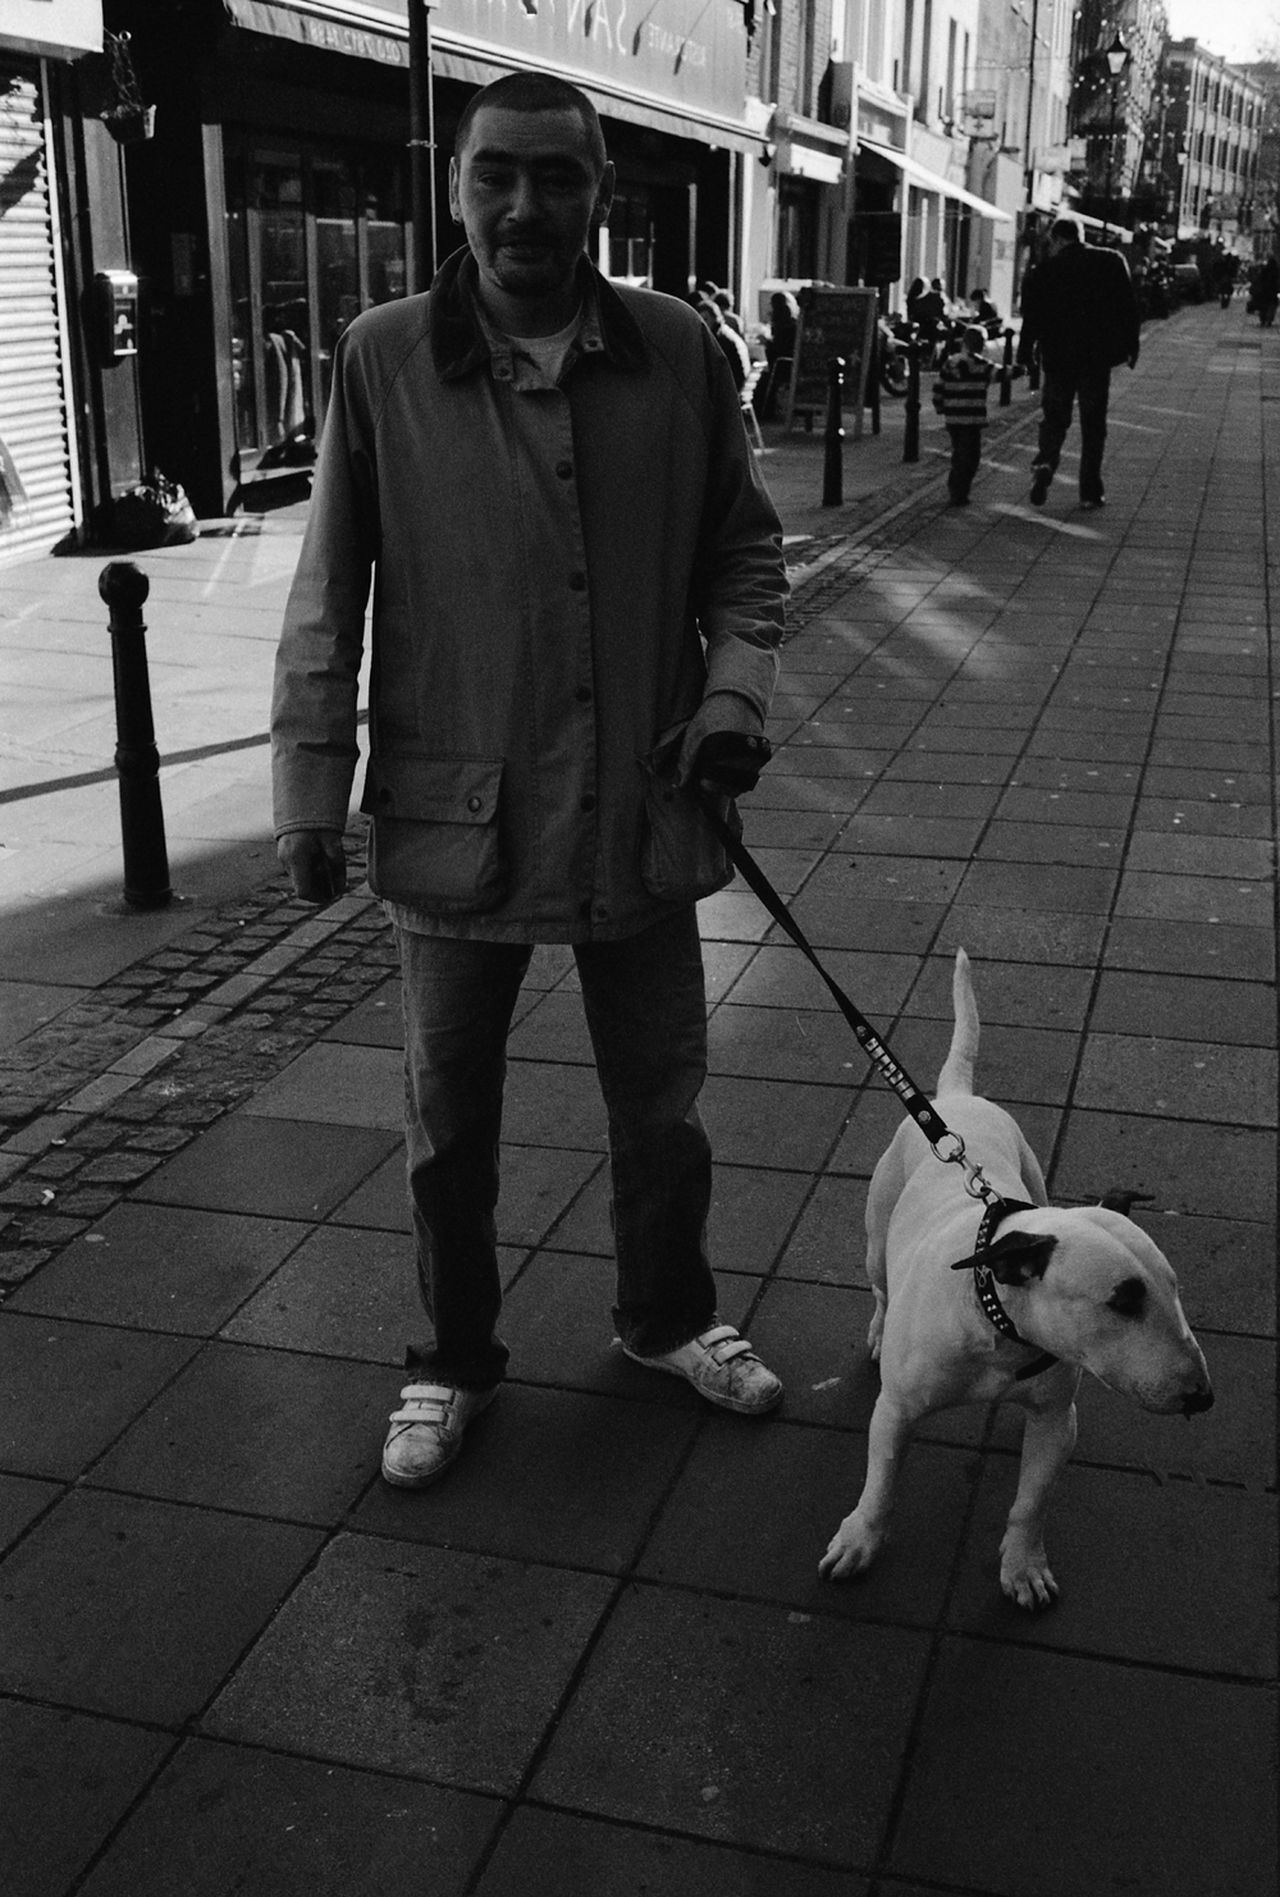 Gentleman of the Road with his Bull Terrier Lucy Alone Casual Clothing Friendship Front View Full Length Gentleman Of The Road With Bull Terrier Soho London Holding Leisure Activity Lifestyles Men Occupation Perspective Portrait Real People Relaxation Sitting Standing Togetherness Walking Women Young Adult